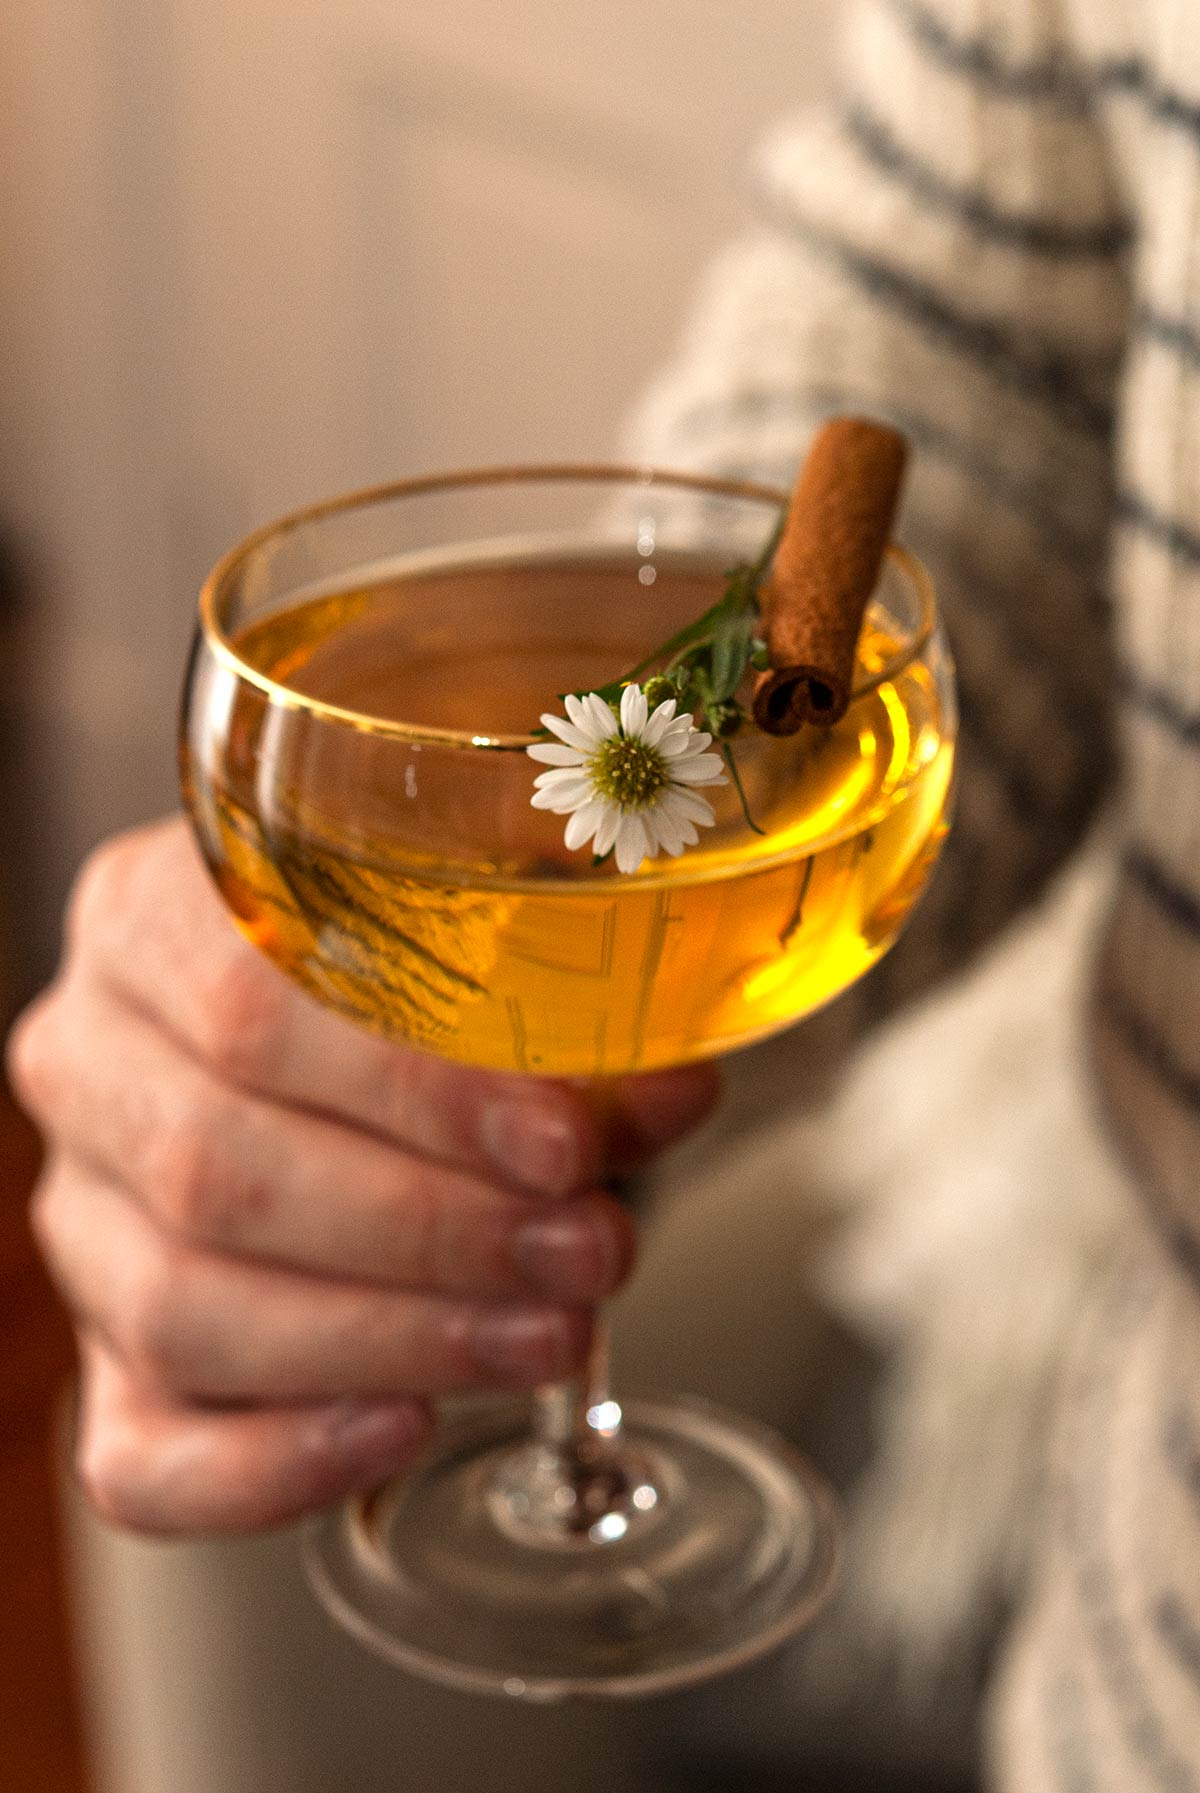 A man's hand holding a cocktail garnished with a daisy and cinnamon stick.